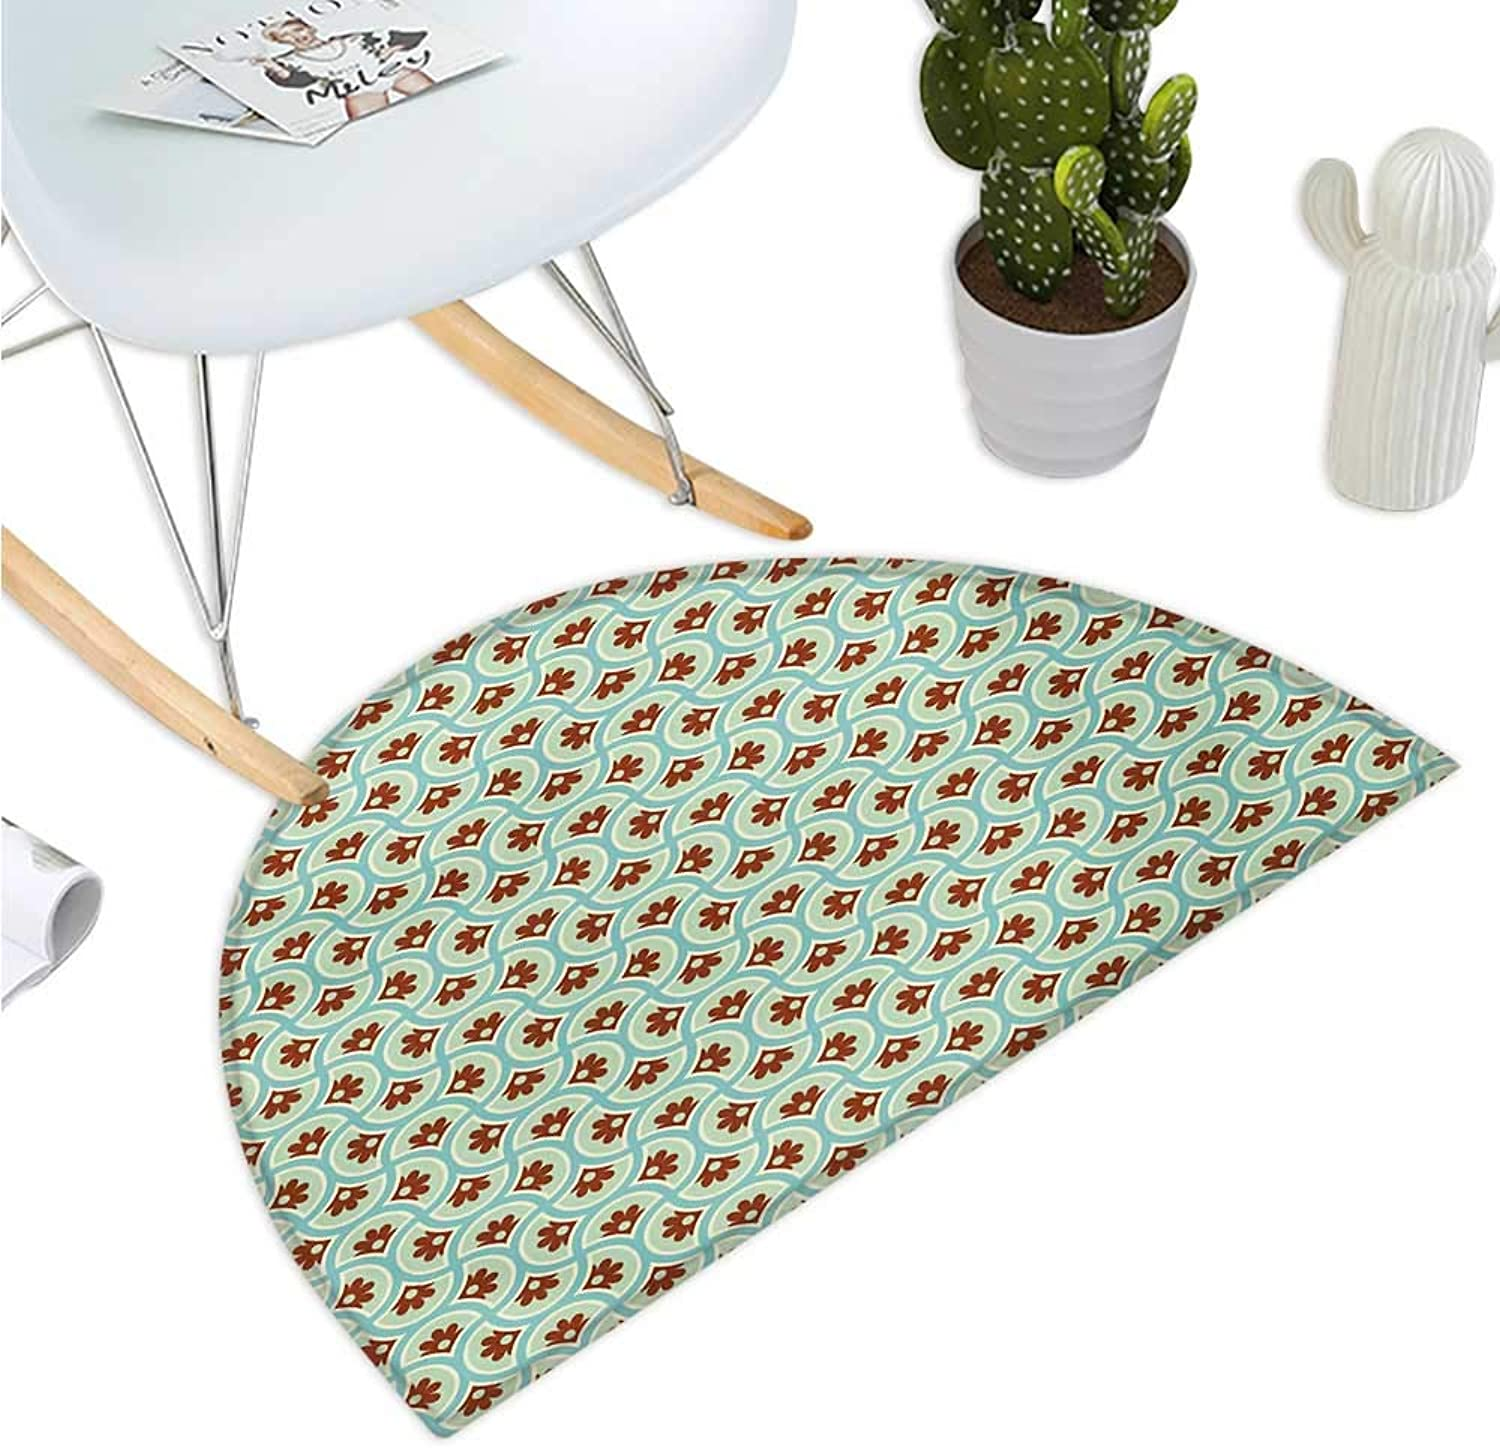 Floral Semicircular Cushion Old Fashioned Flowers Motif with Abstract Effects Nostalgia Print Entry Door Mat H 35.4  xD 53.1  Brown Pale Green Seafoam